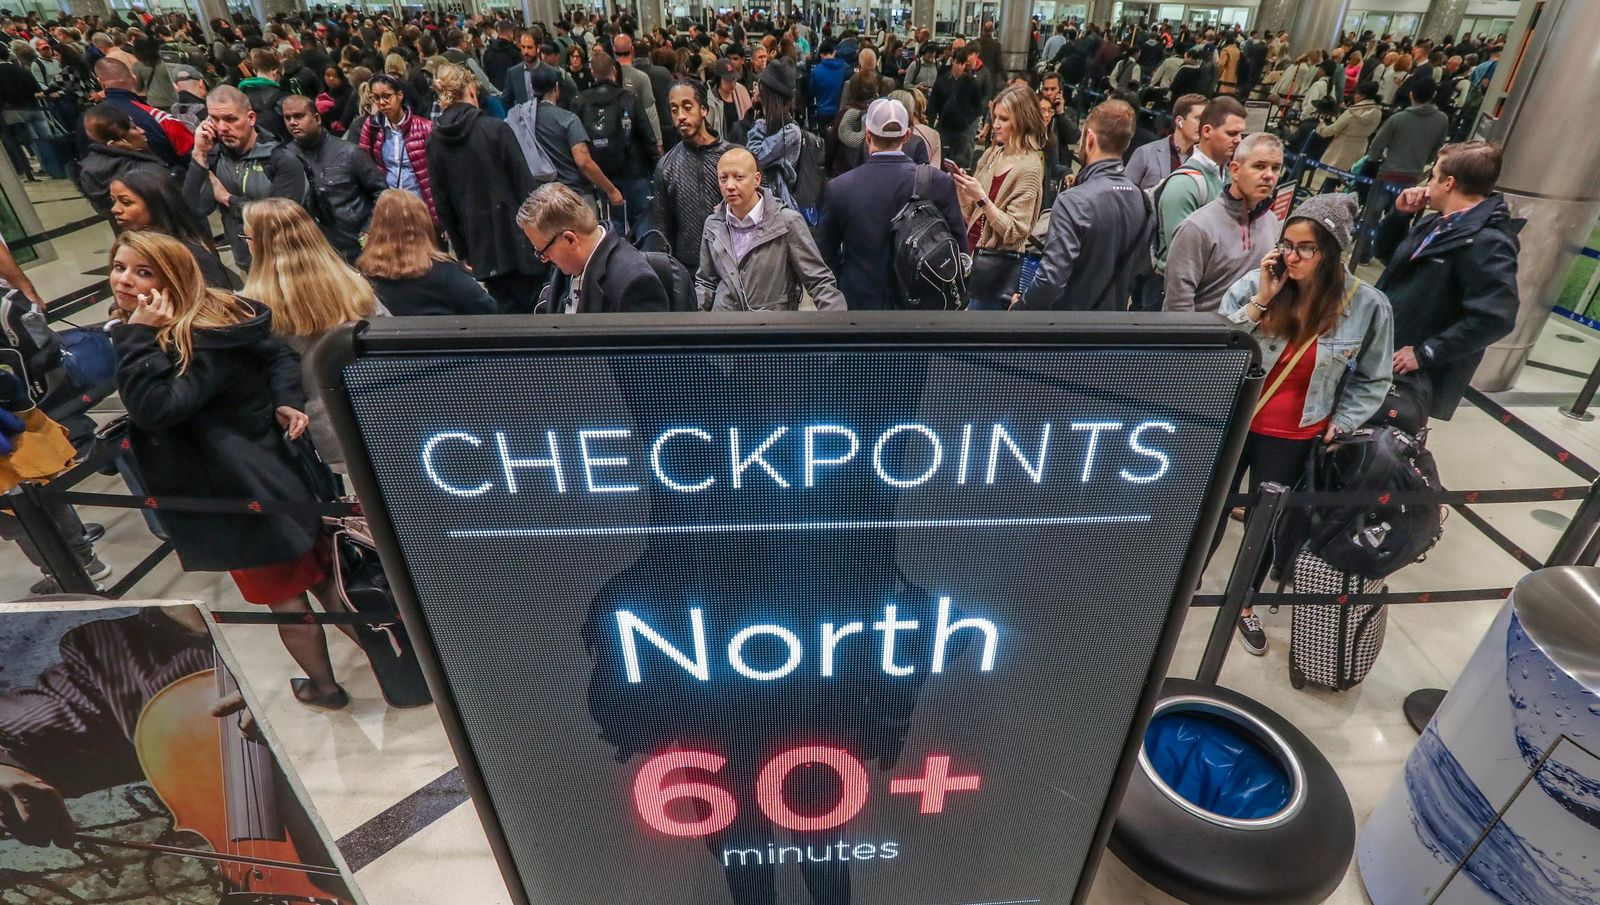 Security lines at Hartsfield-Jackson International Airport in Atlanta stretch more than an hour long amid the partial federal shutdown, causing some travelers to miss flights, Monday morning, Jan. 14, 2019. (John Spink/Atlanta Journal-Constitution via AP)